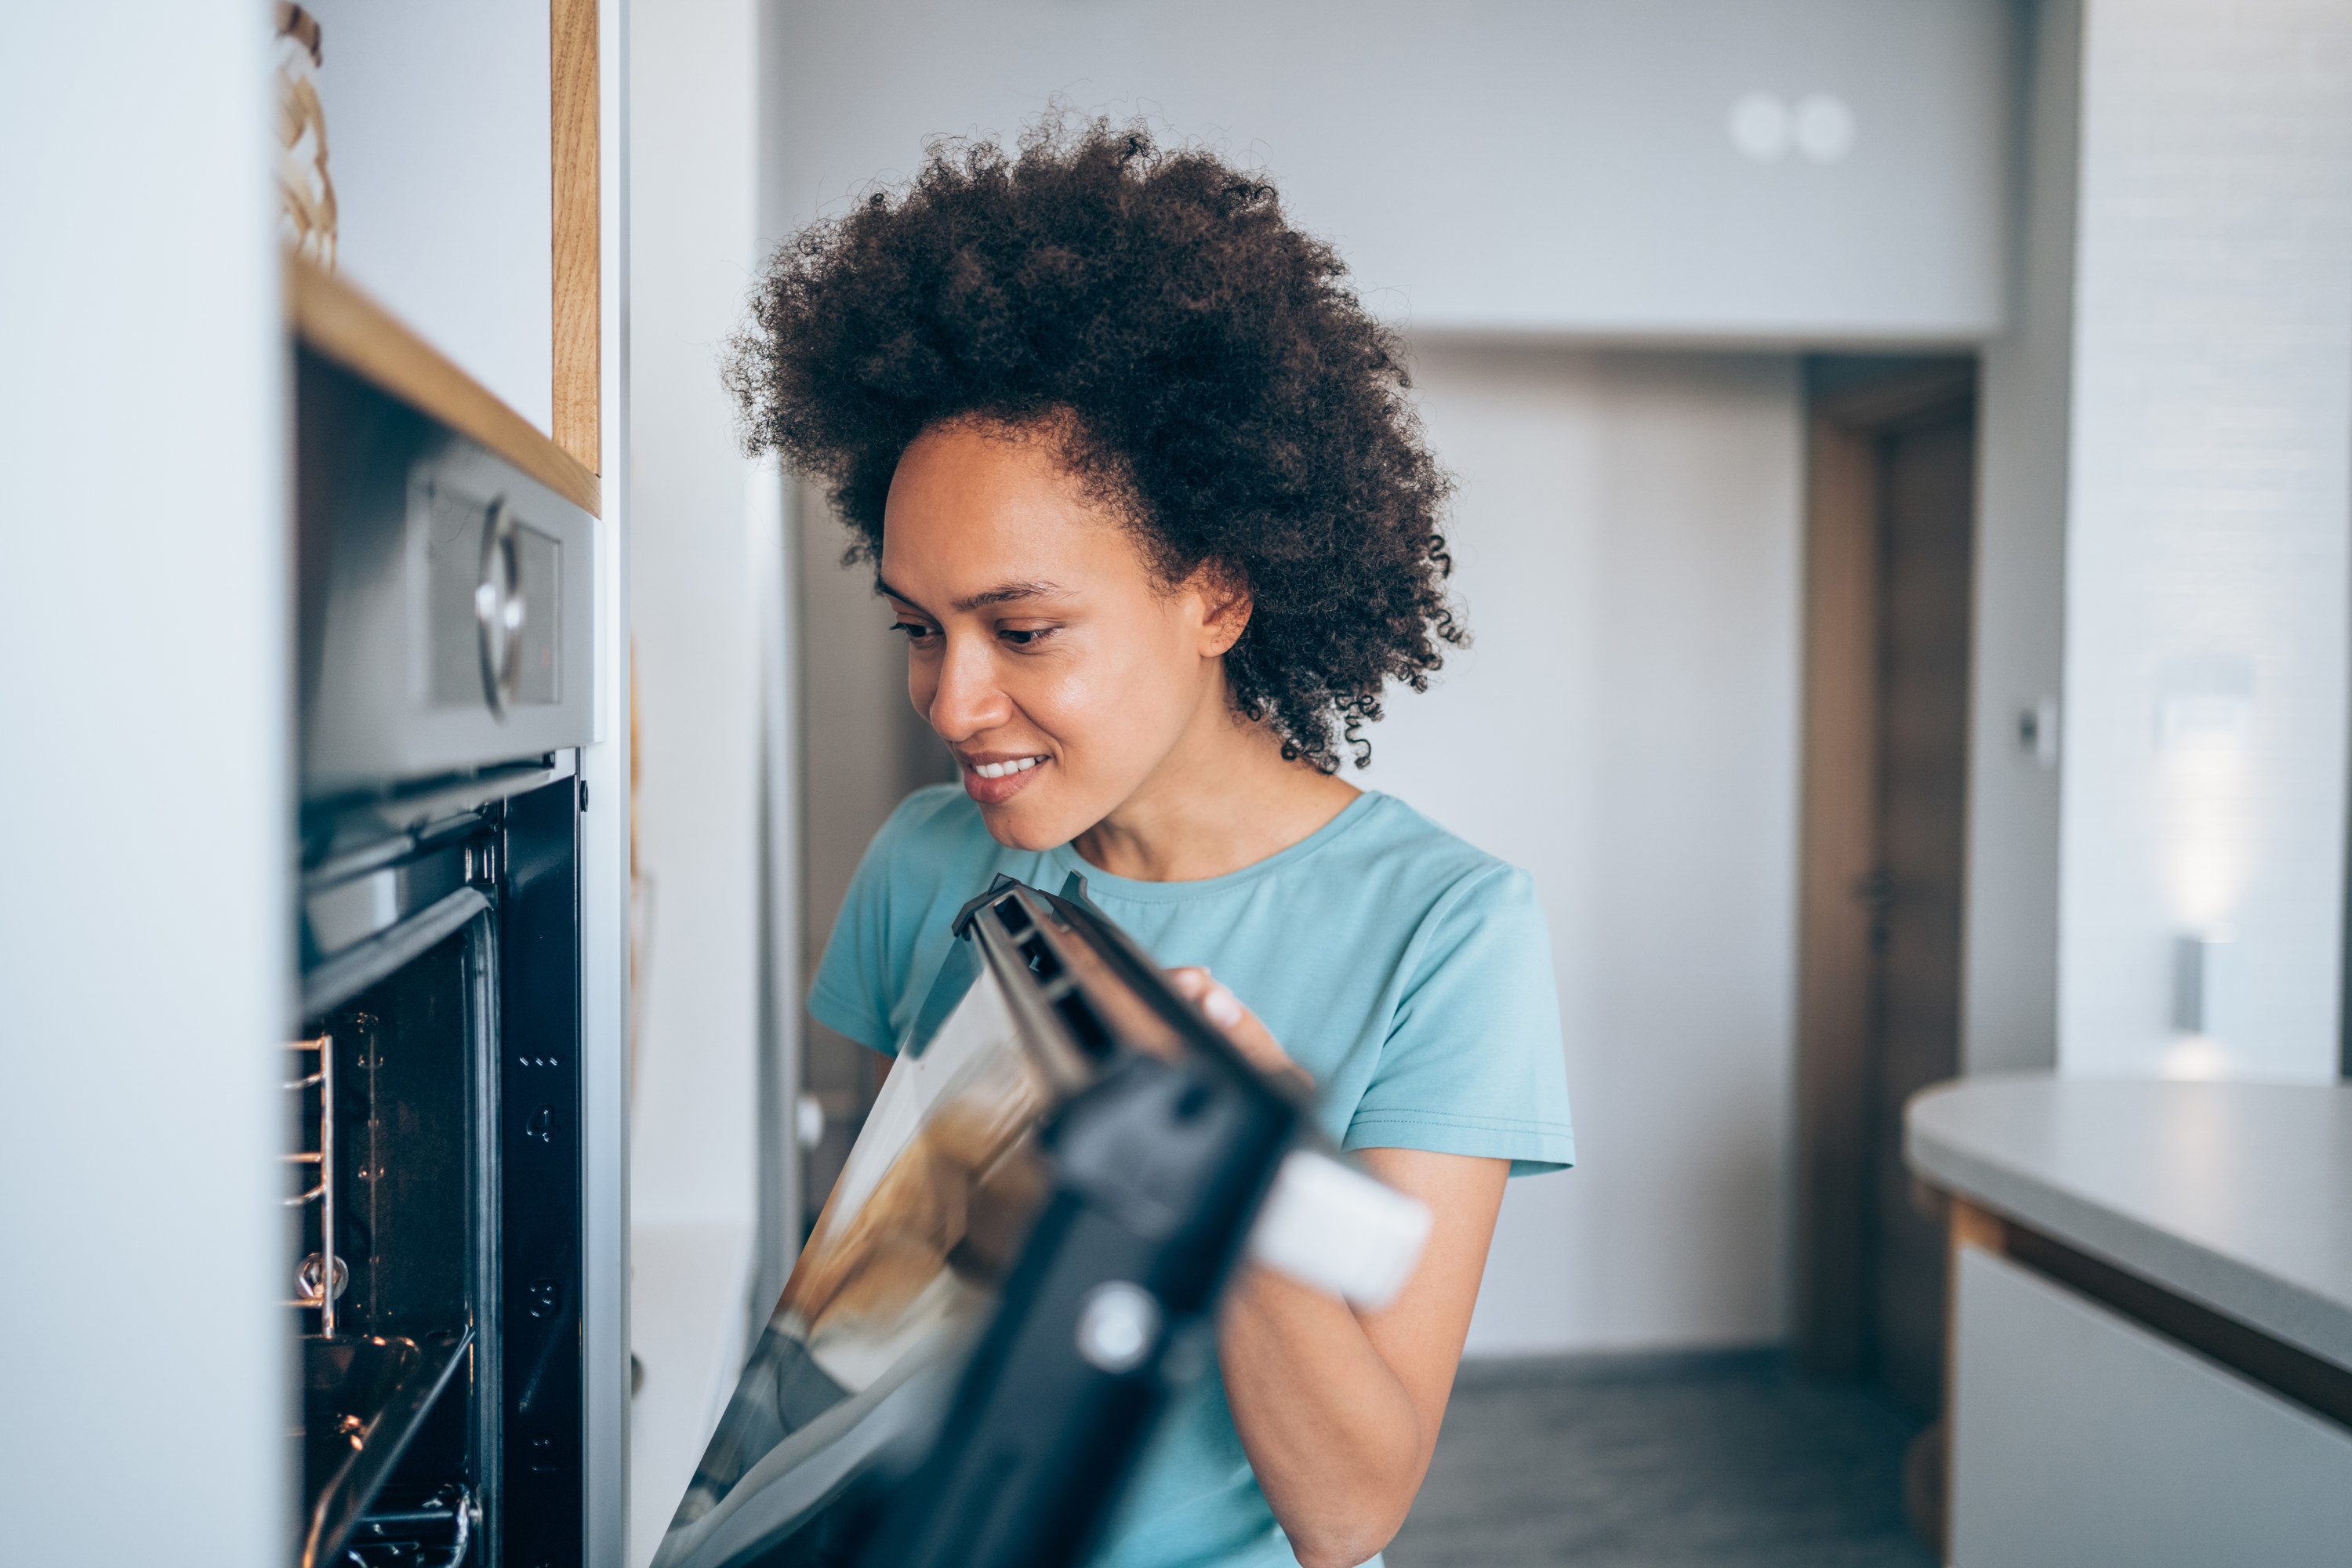 Smiling woman checking food in the oven.